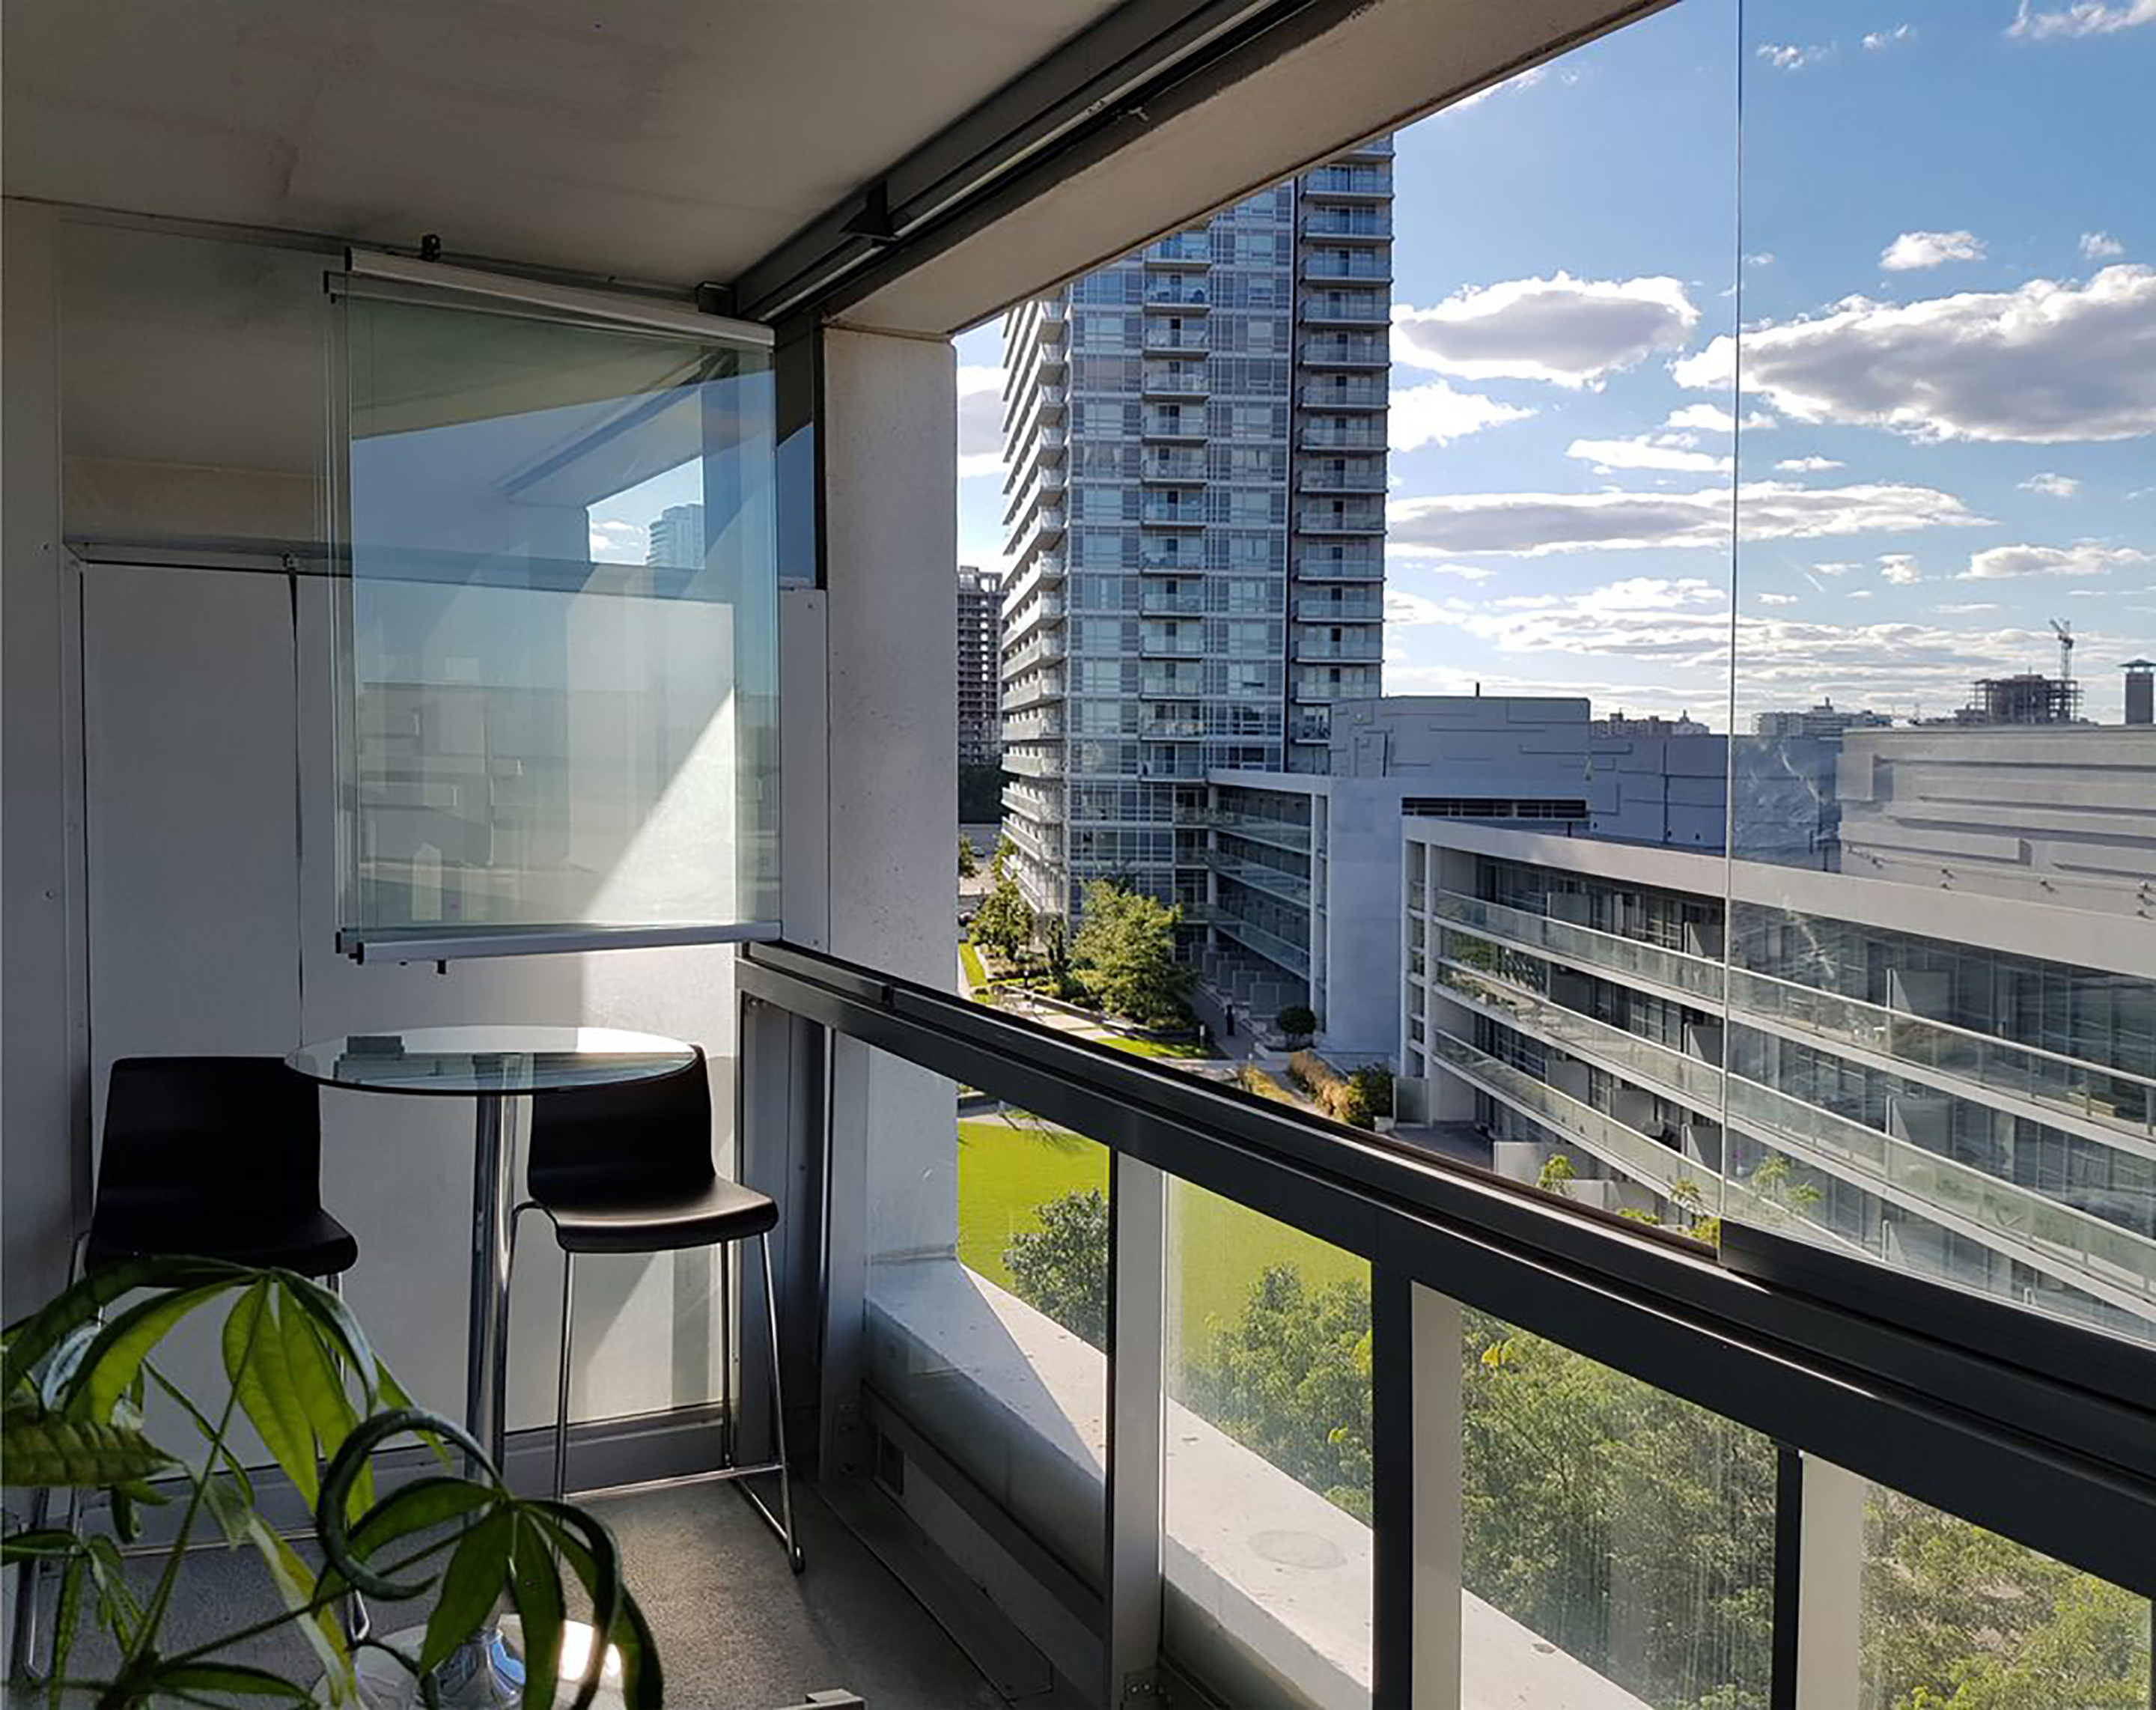 Lumon Canada balcony glazing system providing residents with an unobstructed view of their city. Enclosures can be found all over Canada, include toronto, vancouver and hamilton